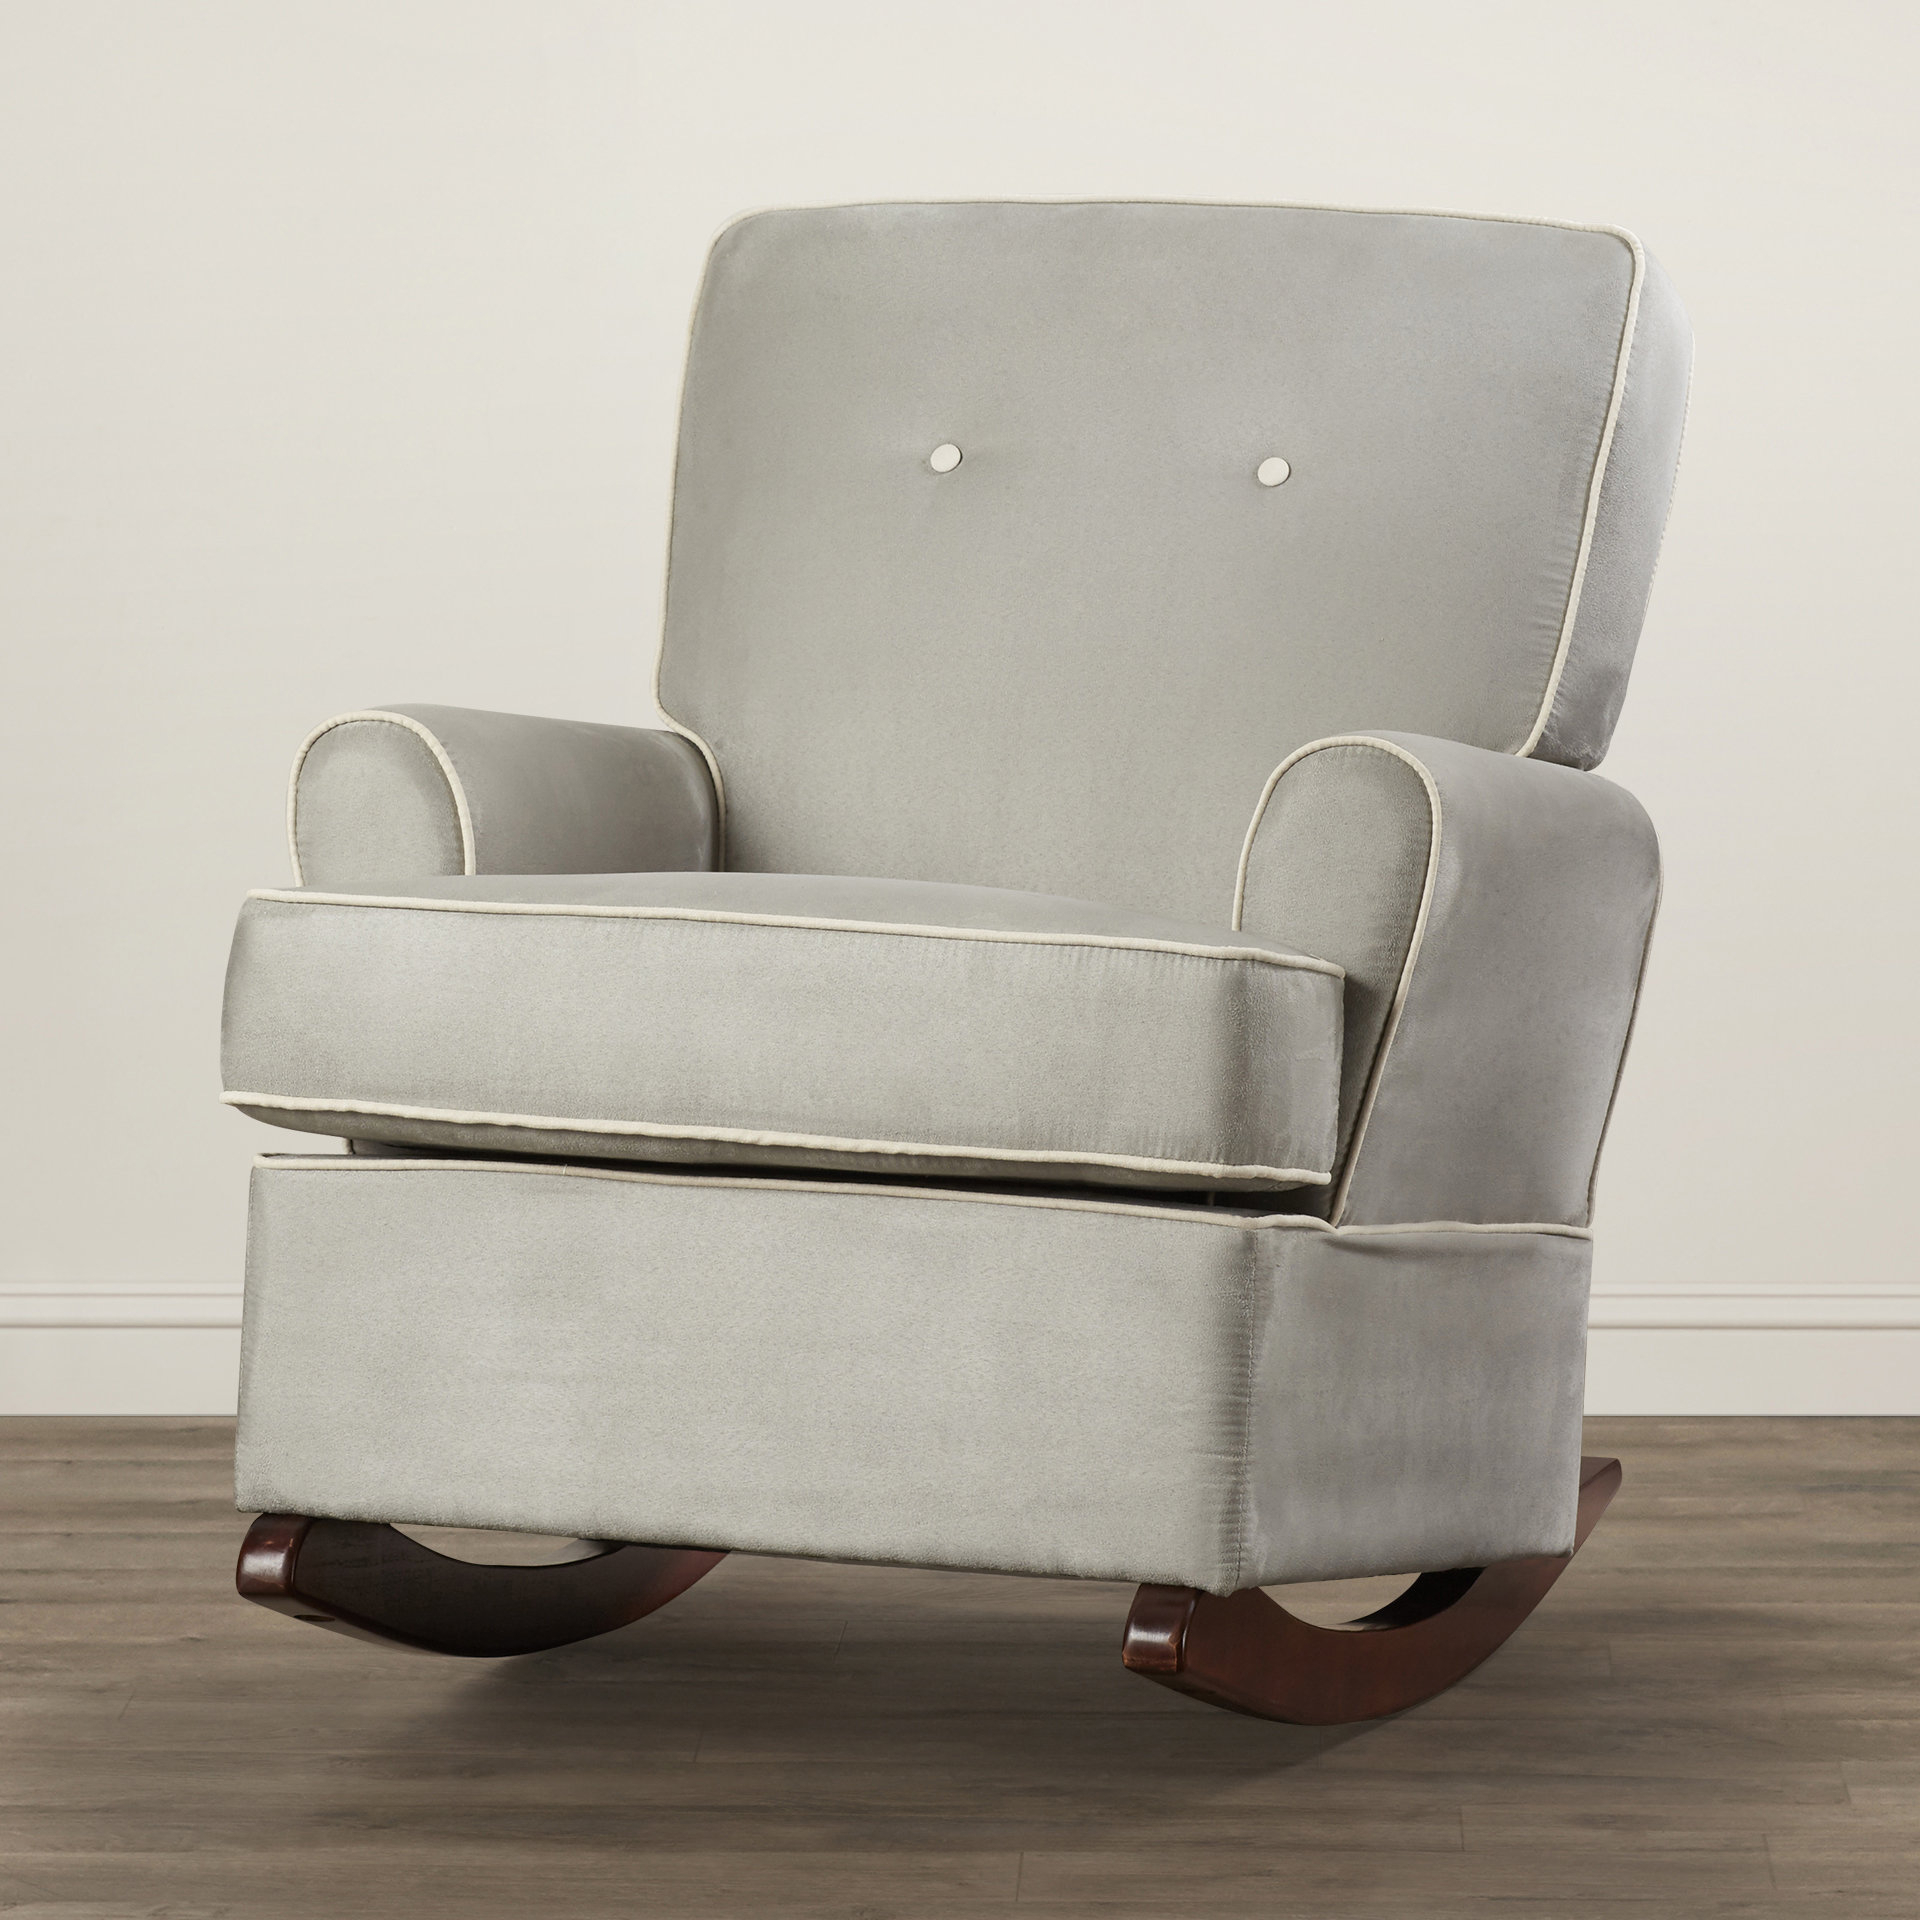 Viv + Rae Shaylee Rocker & Reviews | Wayfair In Bailey Angled Track Arm Swivel Gliders (Image 19 of 20)